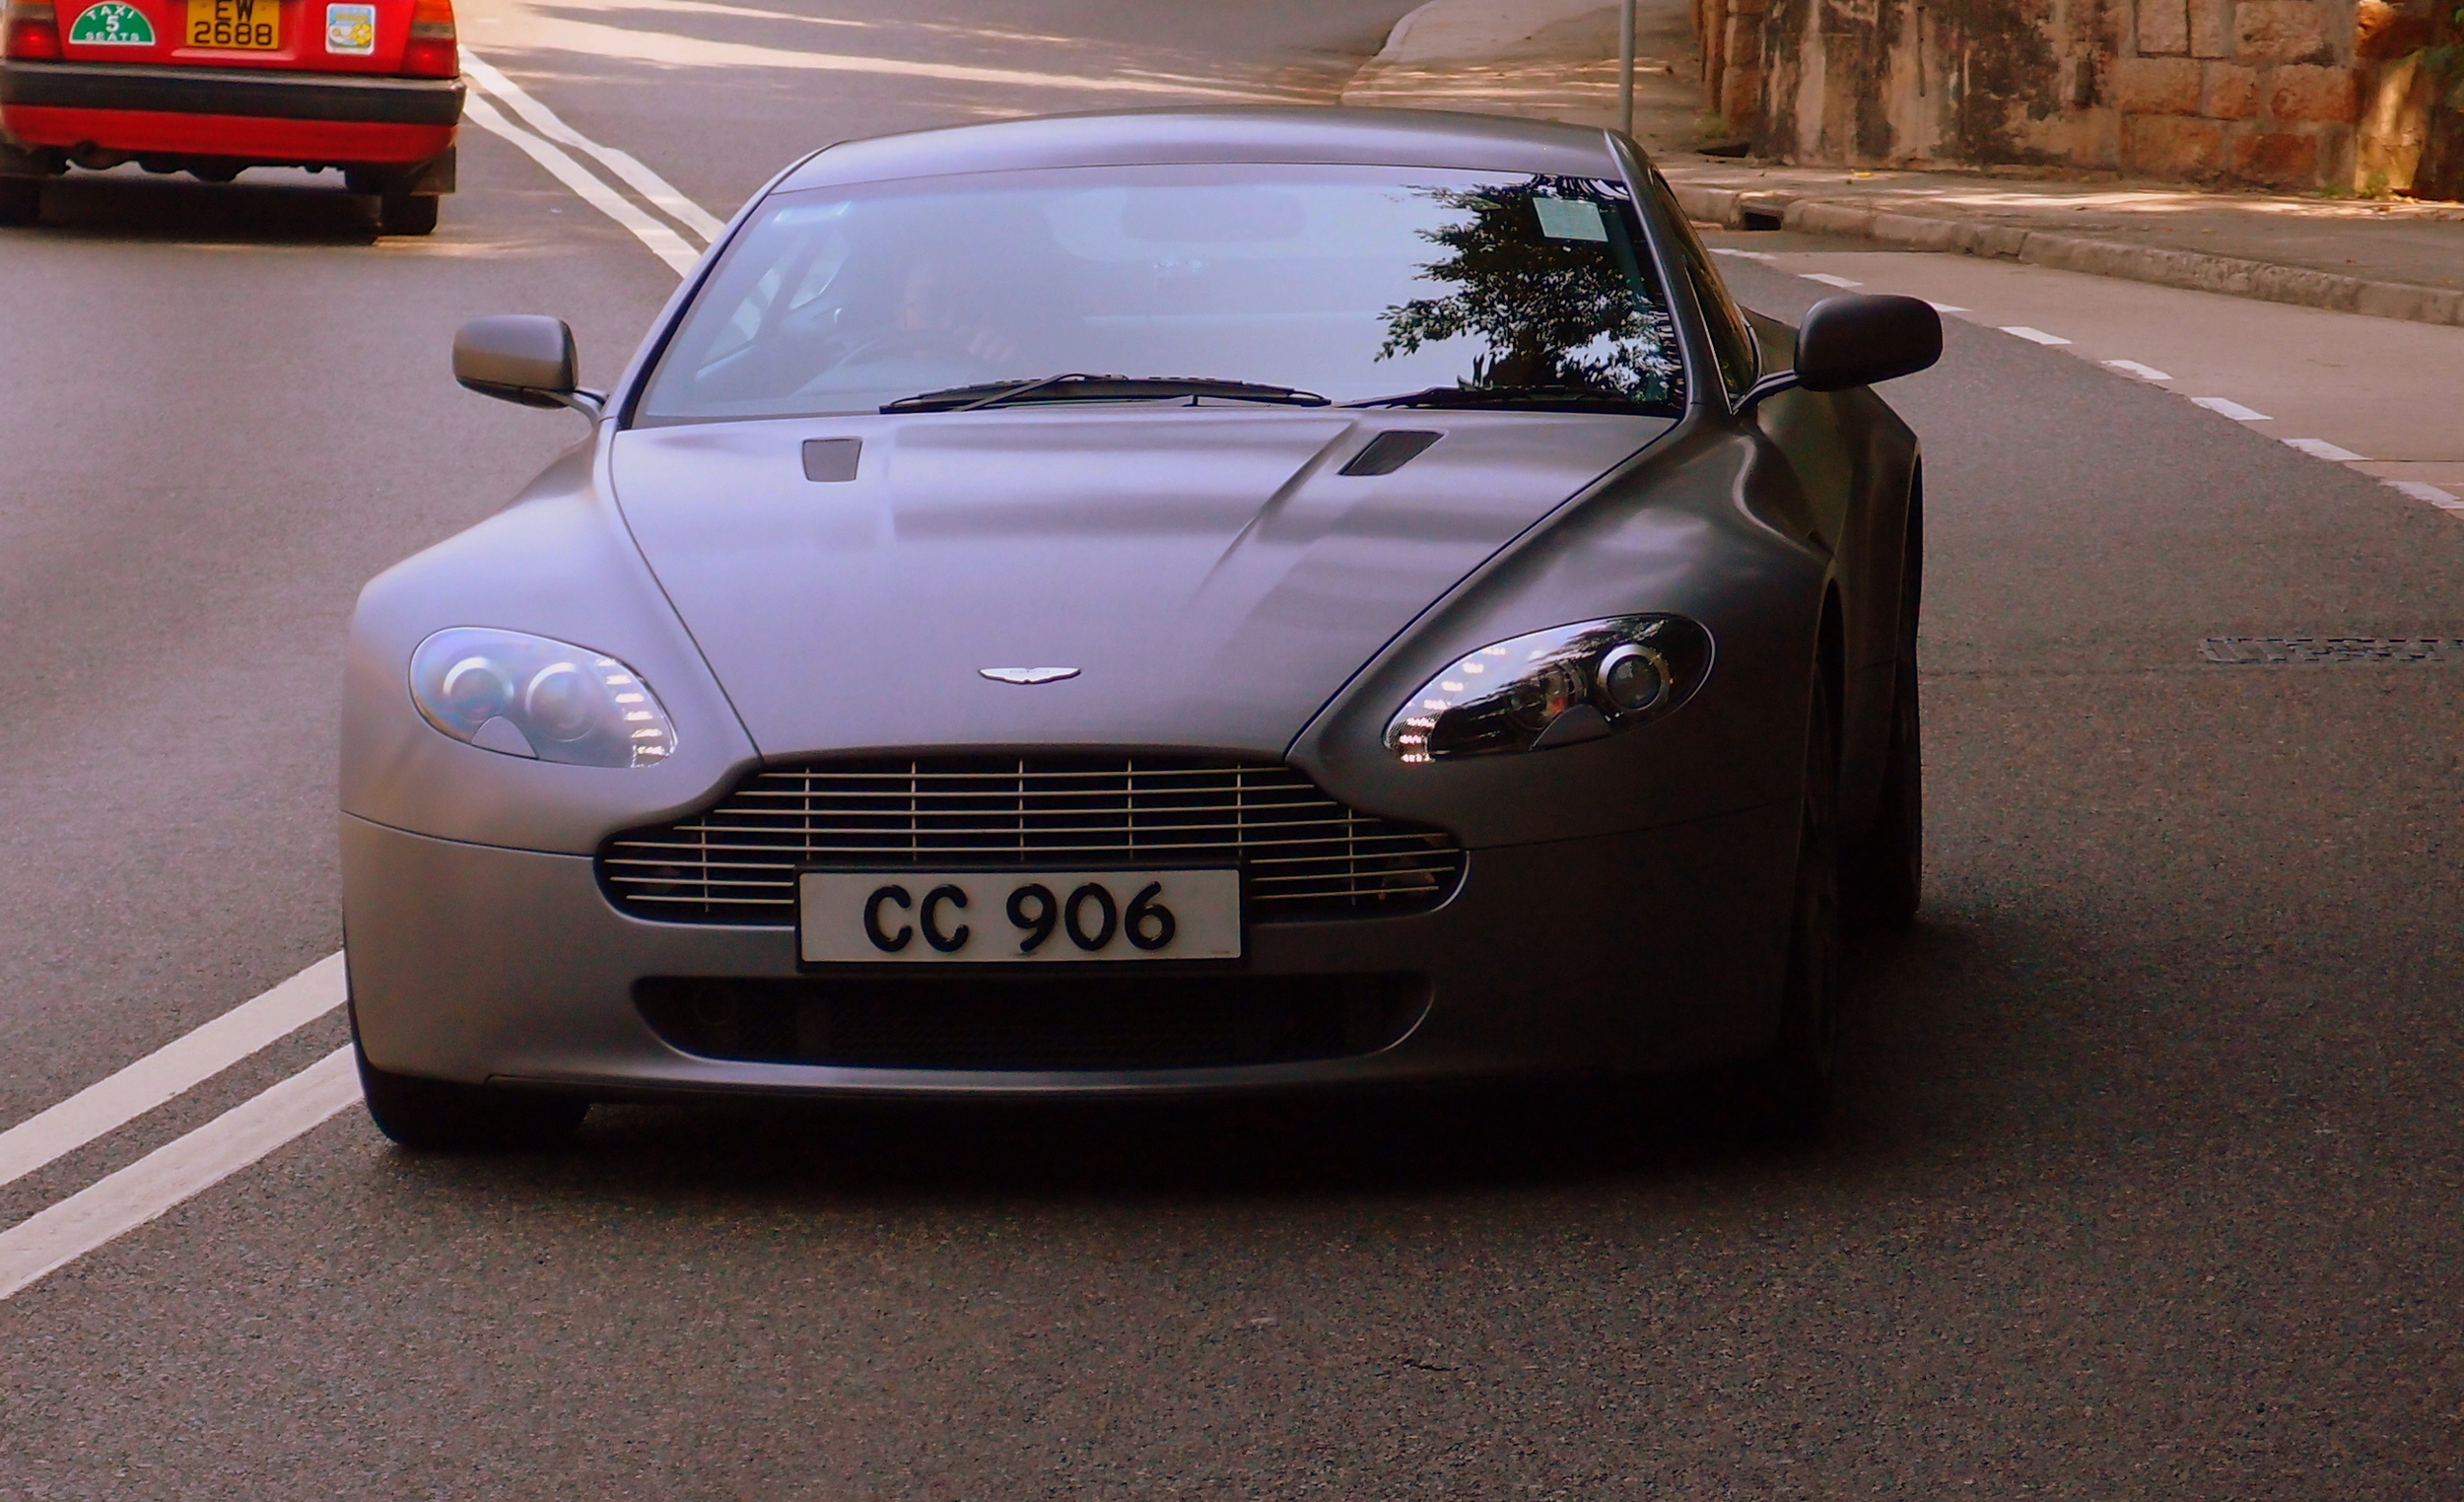 The name is Bond, James Bond - shame about the awful matte paint job on this lovely Aston Martin